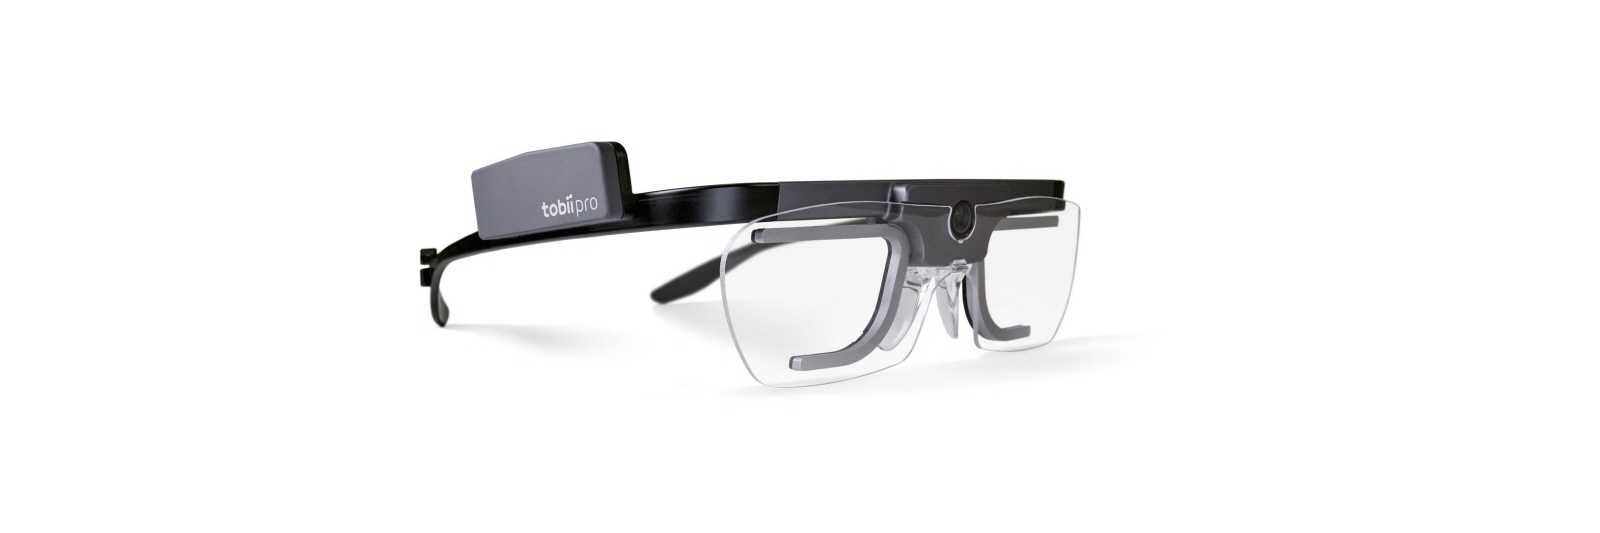 d281f6eb417456 Tobii Pro Glasses 2 wearable eye tracker